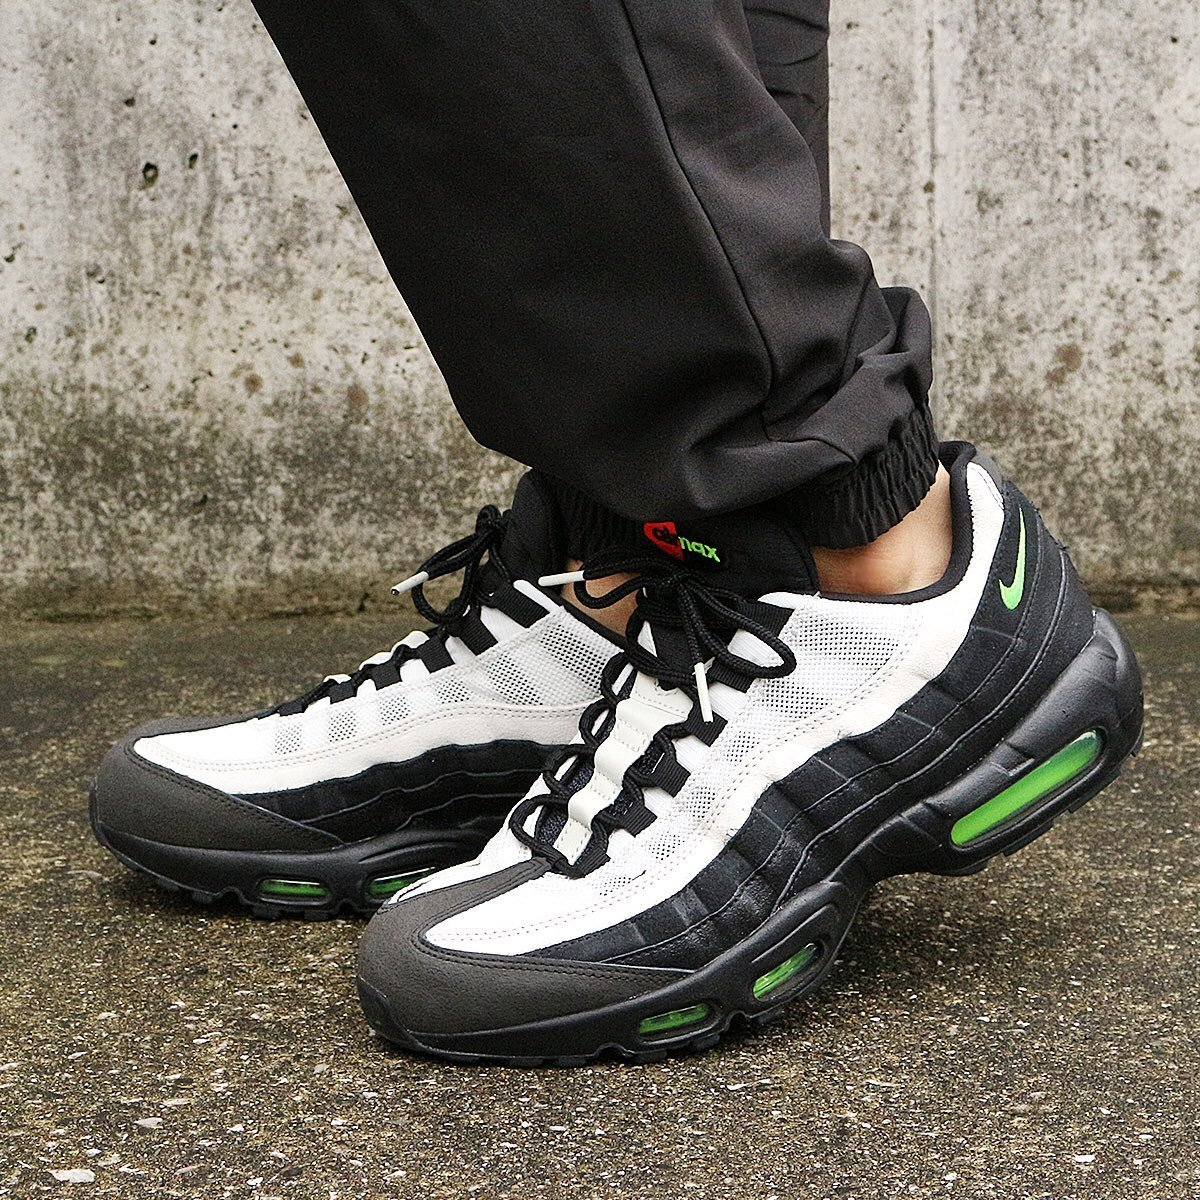 viuda ligado Shinkan  Shop Nike AIR MAX 95 2020 SS Nike Air Max 95 Essential (AT9865-004) by  Km0418 | BUYMA